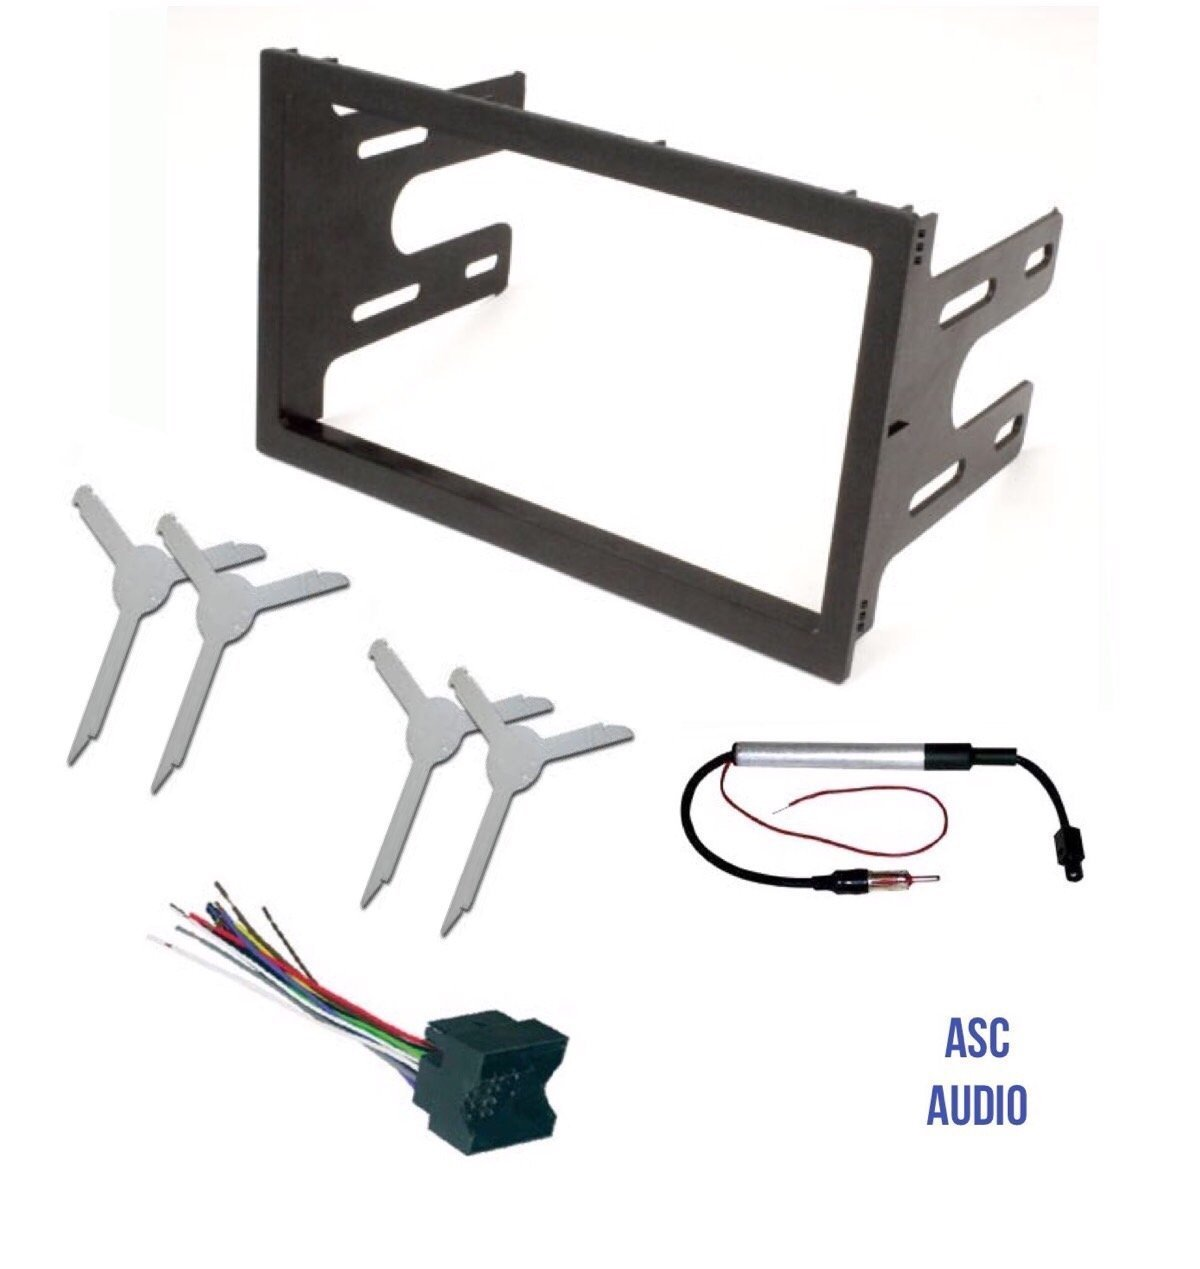 Compatible Vehicles Listed Below Other ASC Audio Car Stereo Radio Wire Harness Plug and Antenna Adapter for some Chevrolet and Pontiac Vehicles